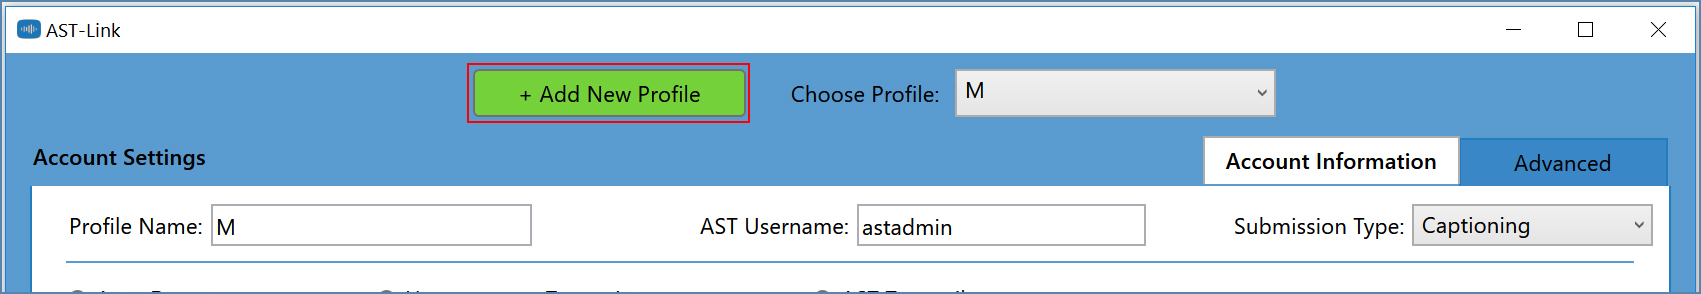 Image of the AST-Link window, Settings section